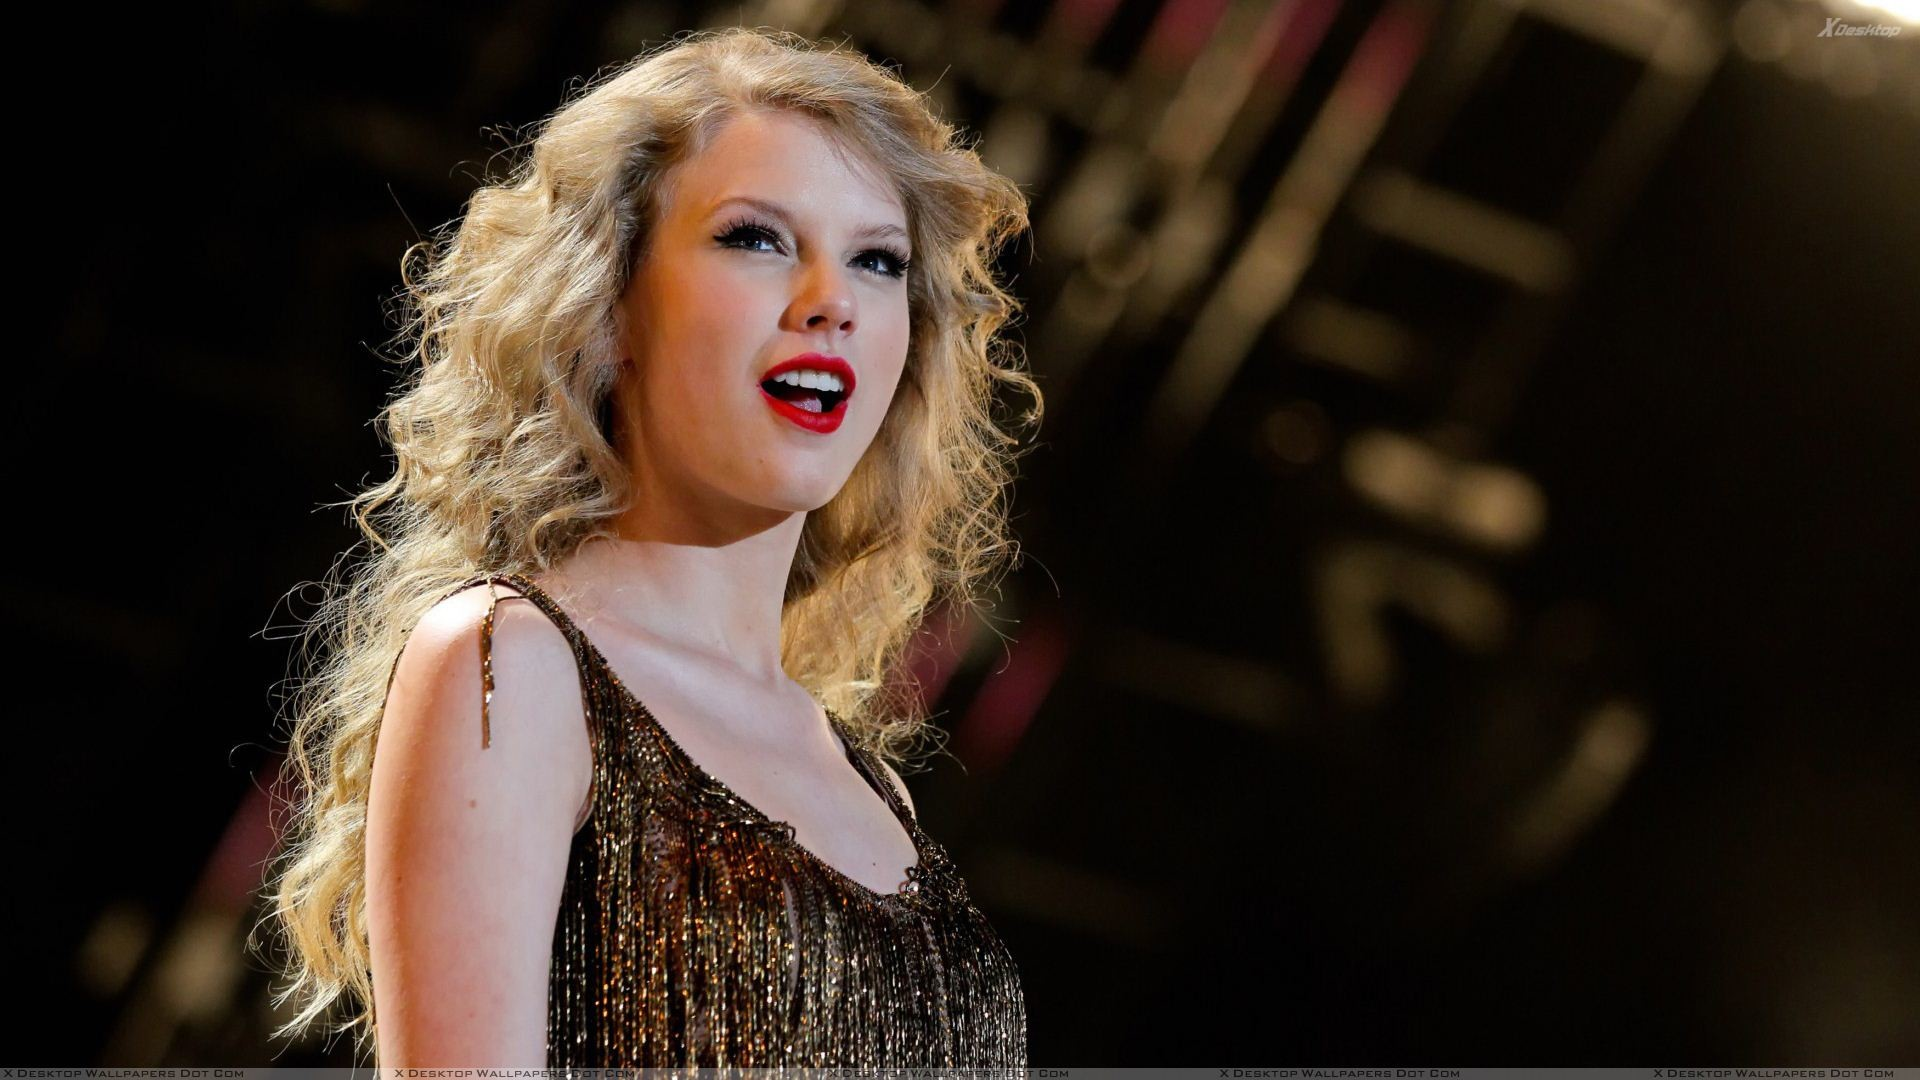 Beautiful Girl With Guitar Wallpapers Taylor Swift Hd 2018 Wallpapers 70 Images